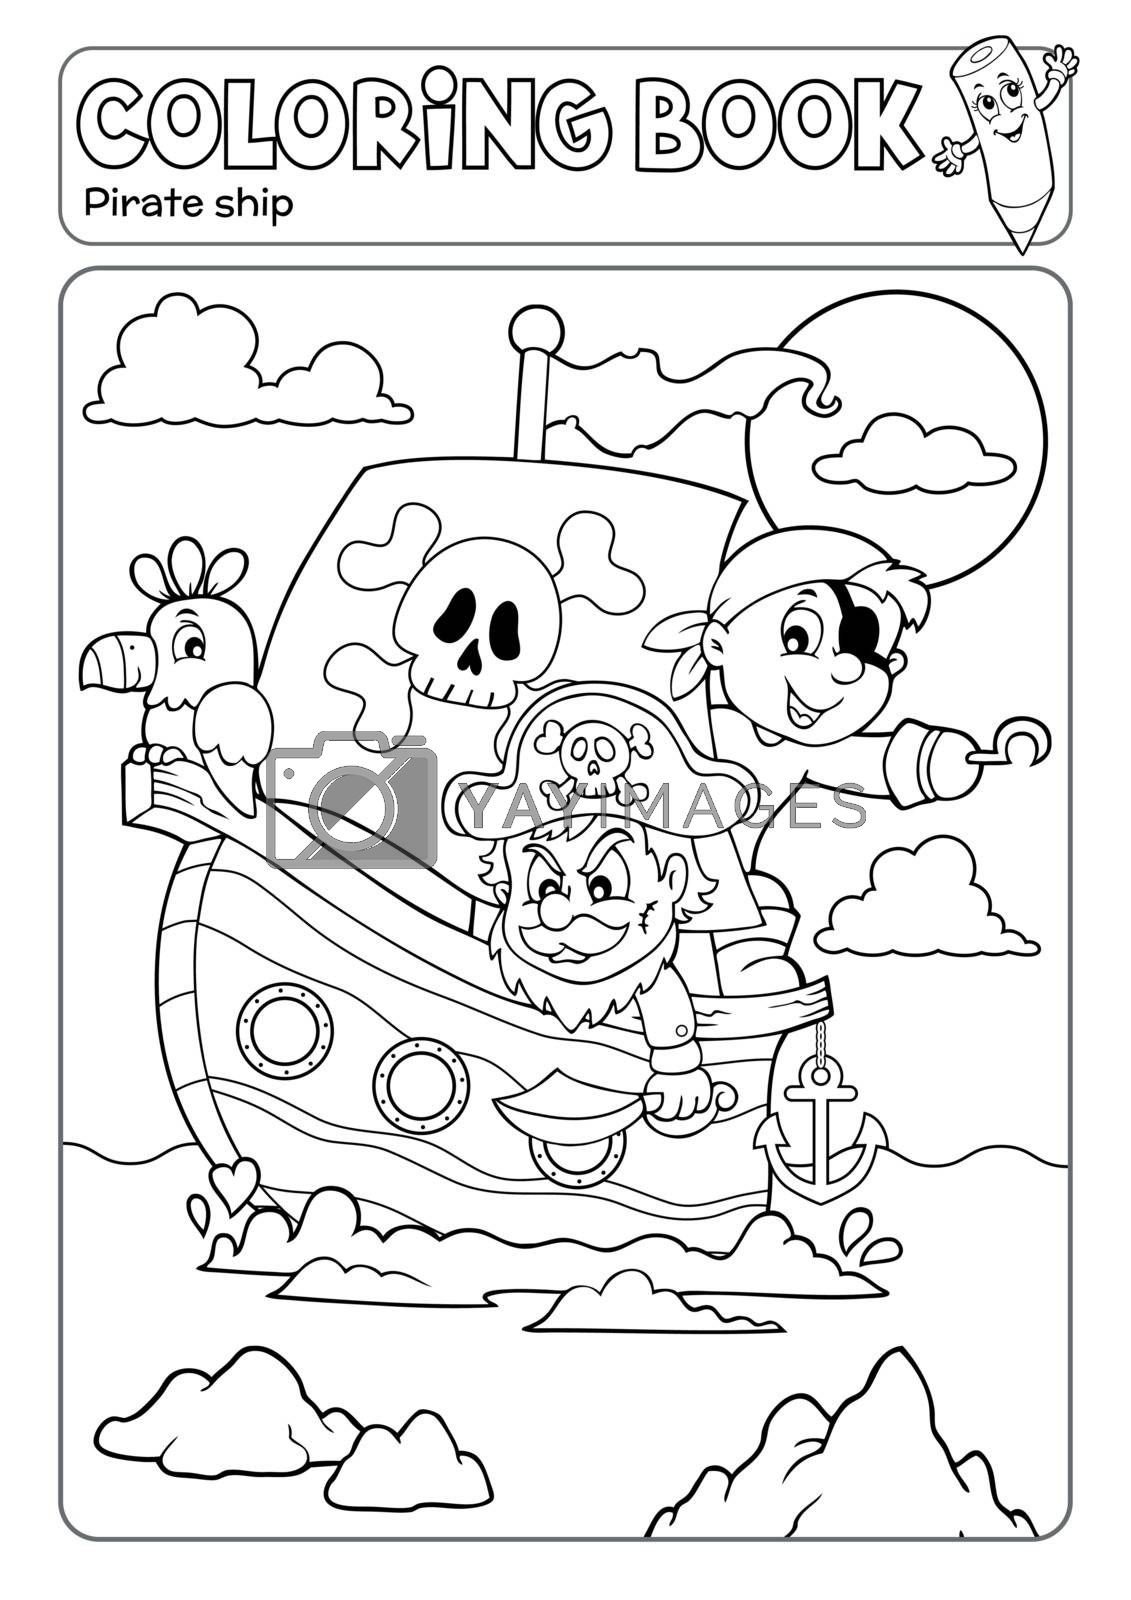 Coloring book pirate boat theme 2 - eps10 vector illustration.